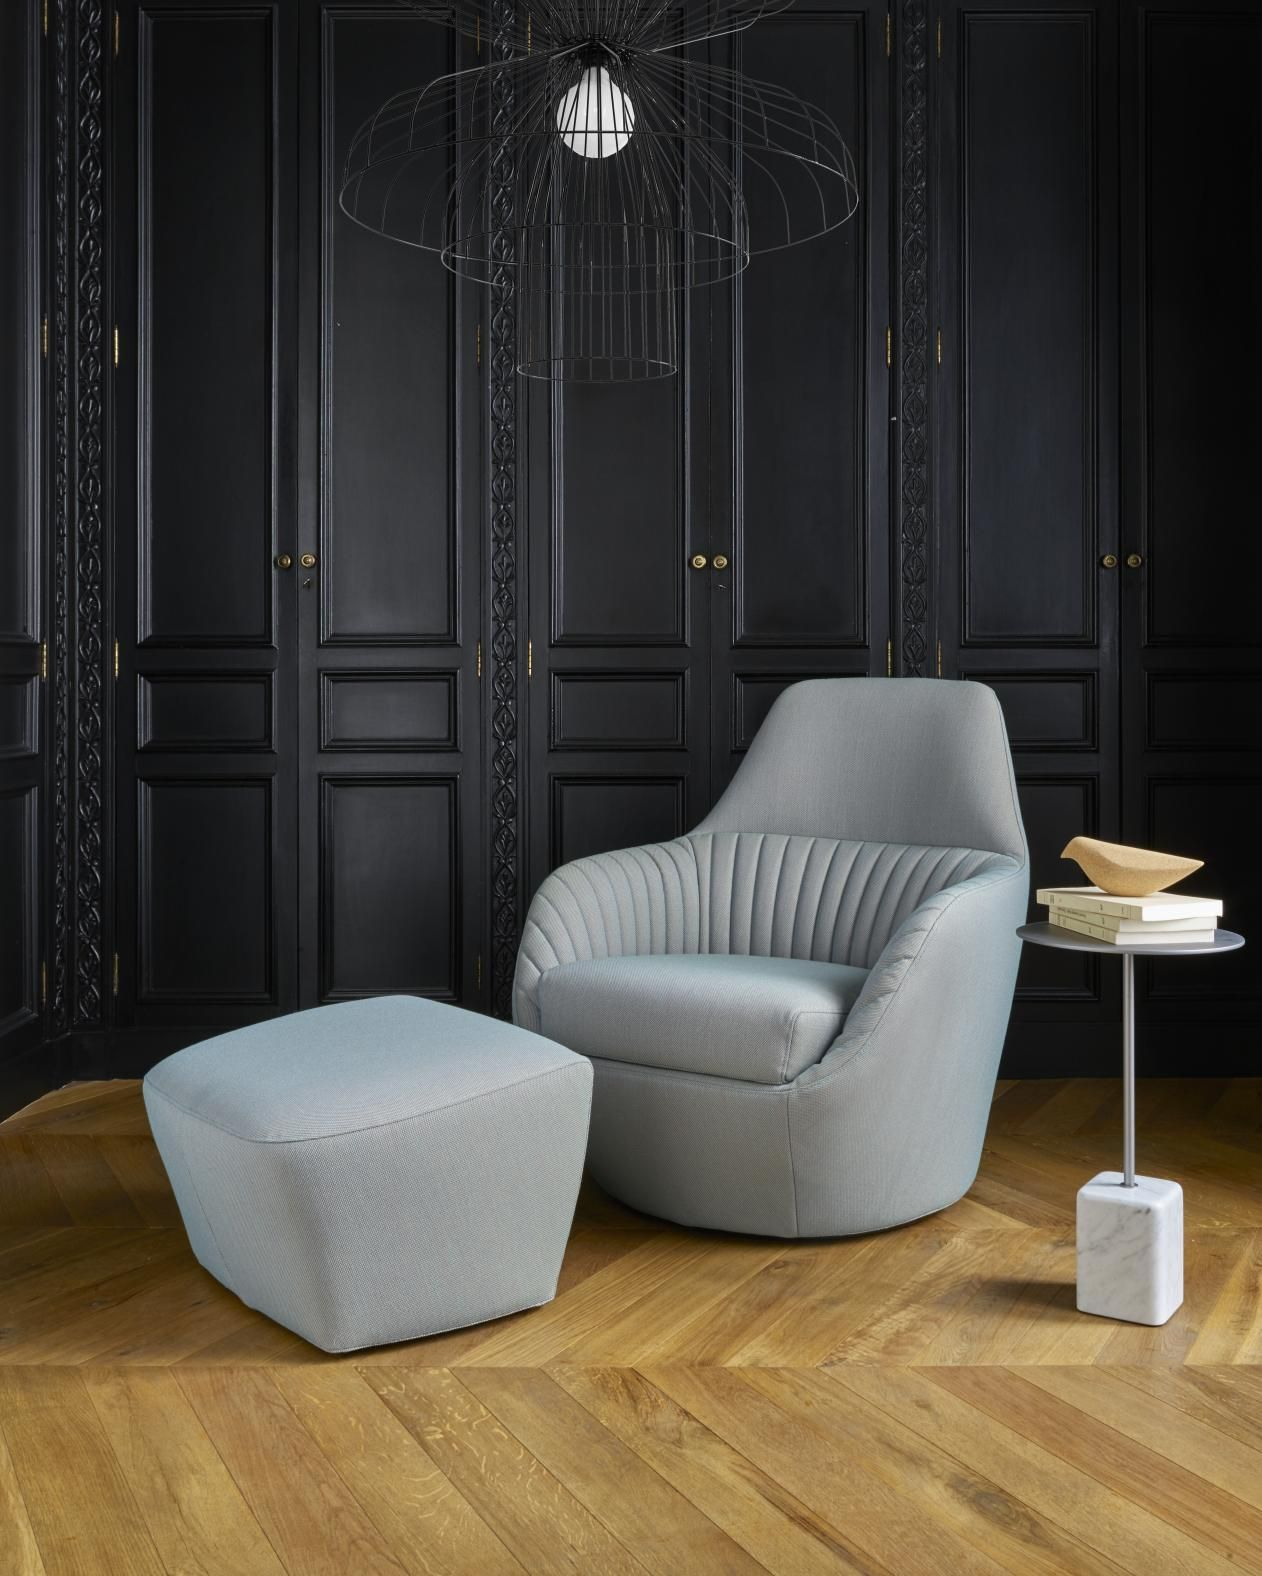 Amedee armchair & Kotori bird, by Marie Christine Dorner - Newsletter of September 2017